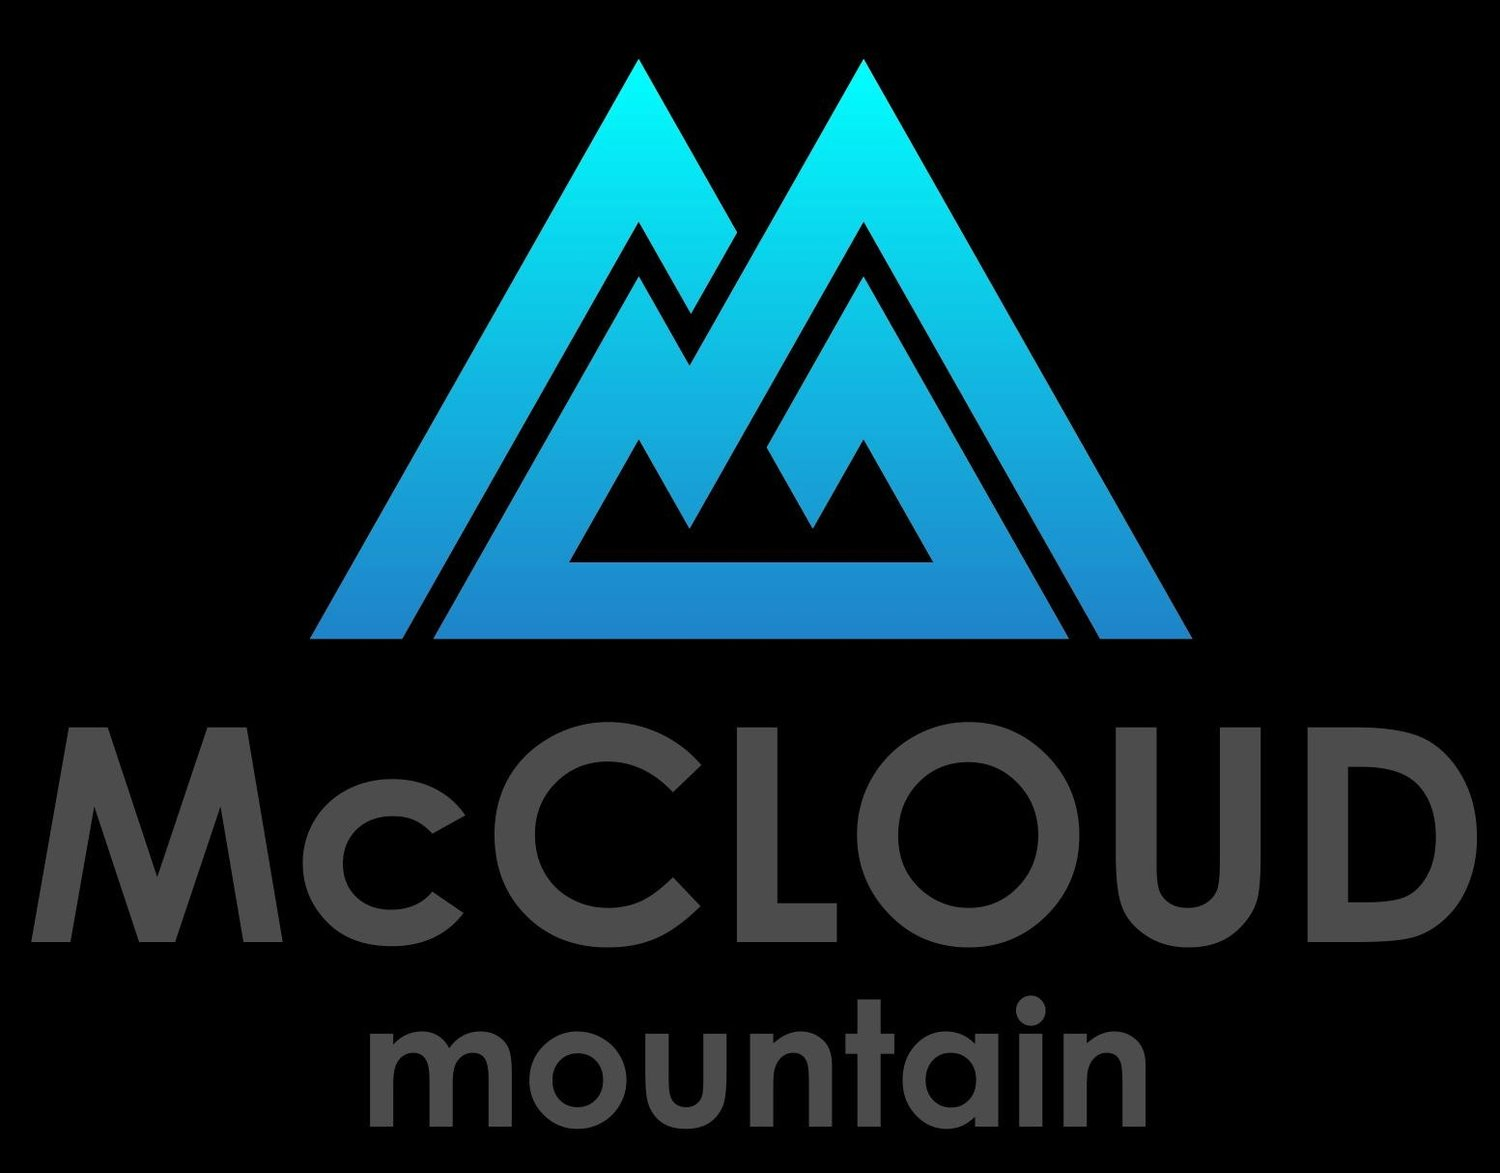 McCloud Mountain